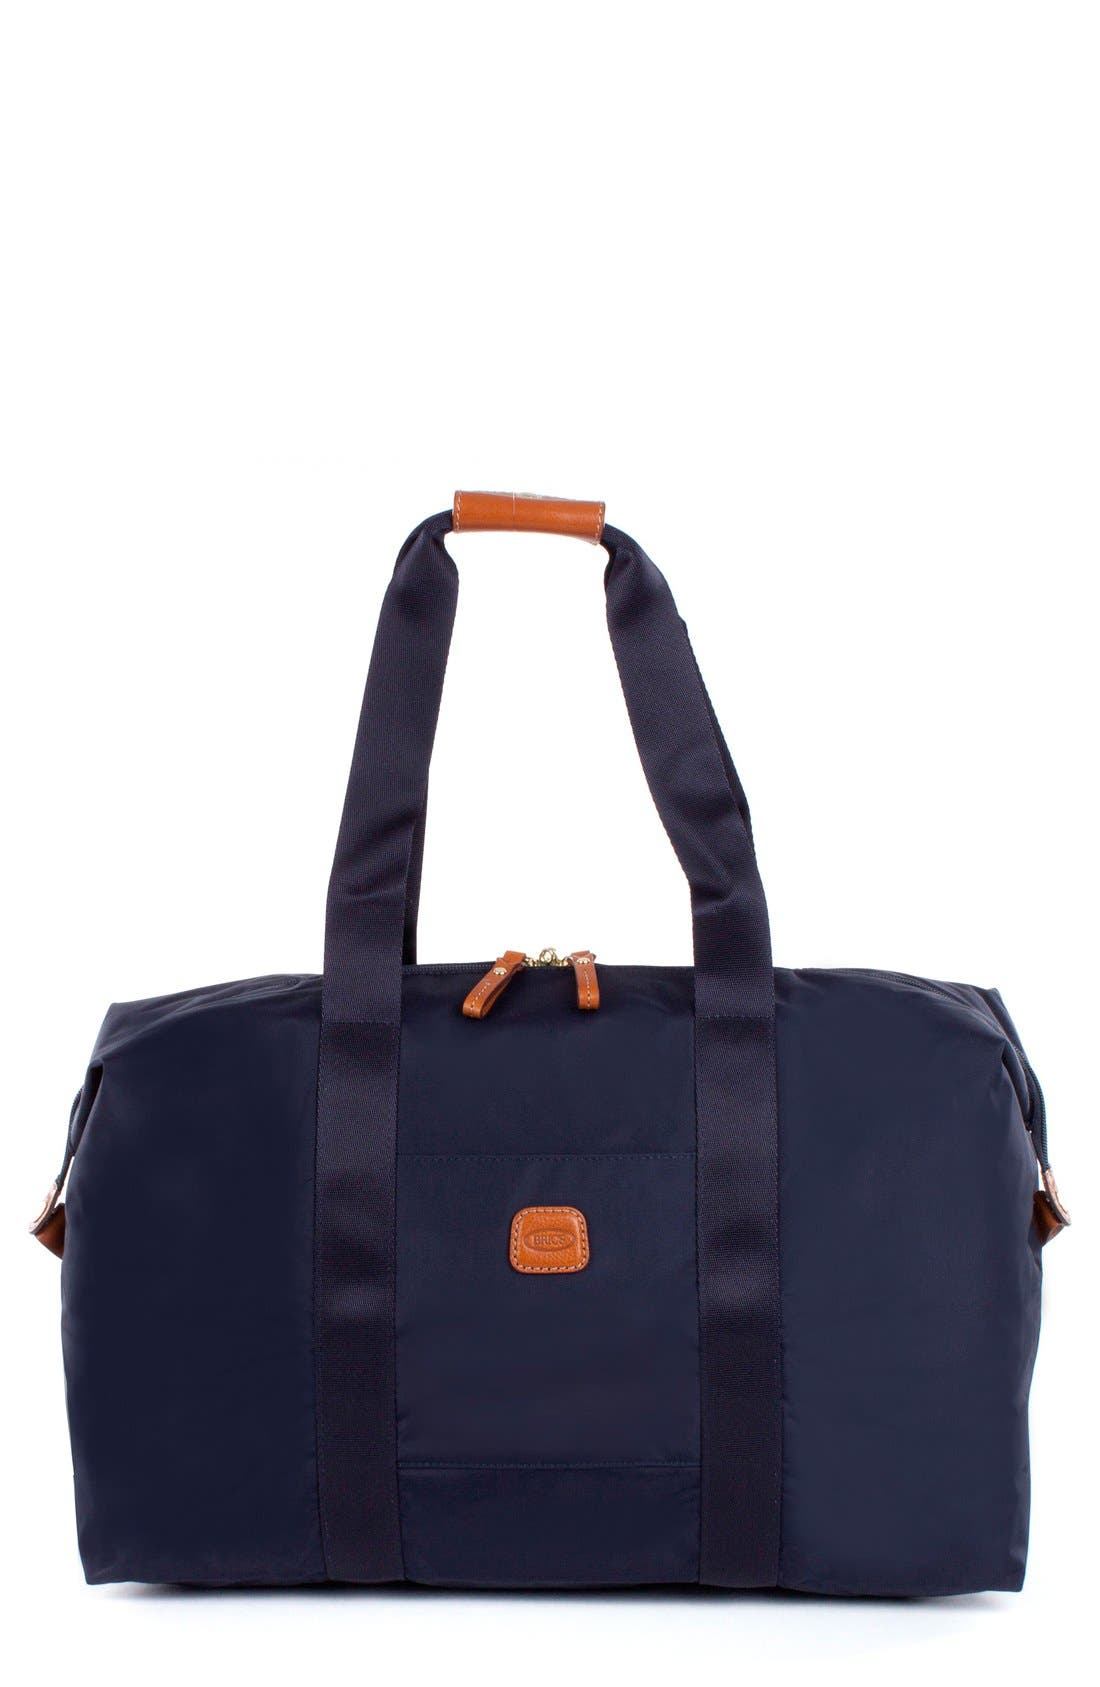 'X-Bag' Folding Duffel Bag,                         Main,                         color, Navy